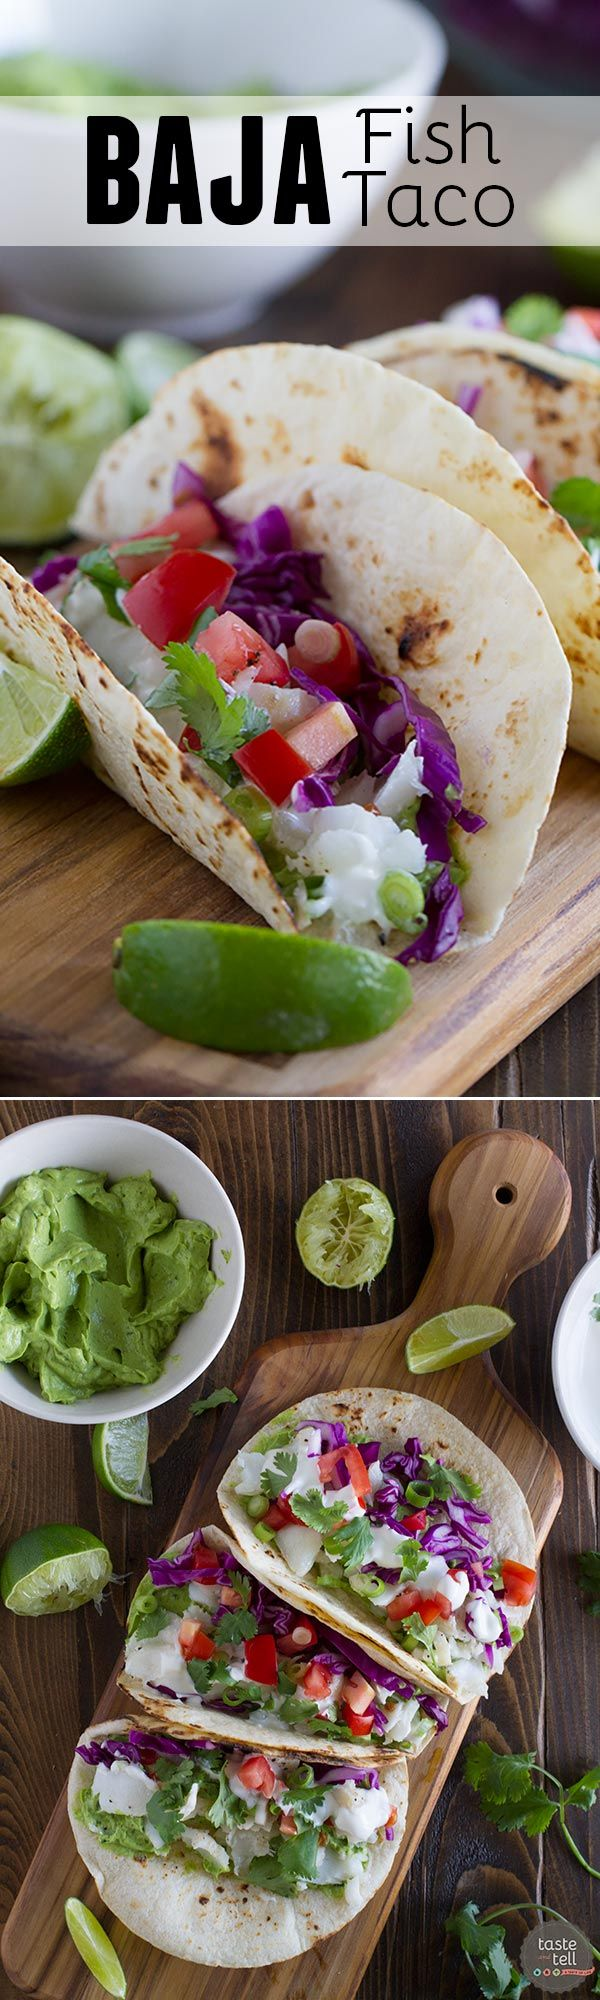 A healthier fish taco, this Baja Fish Taco Recipe has grilled flaky white fish, a creamy avocado sauce, and a tangy white mayo sauce. My idea of a perfect taco night!: